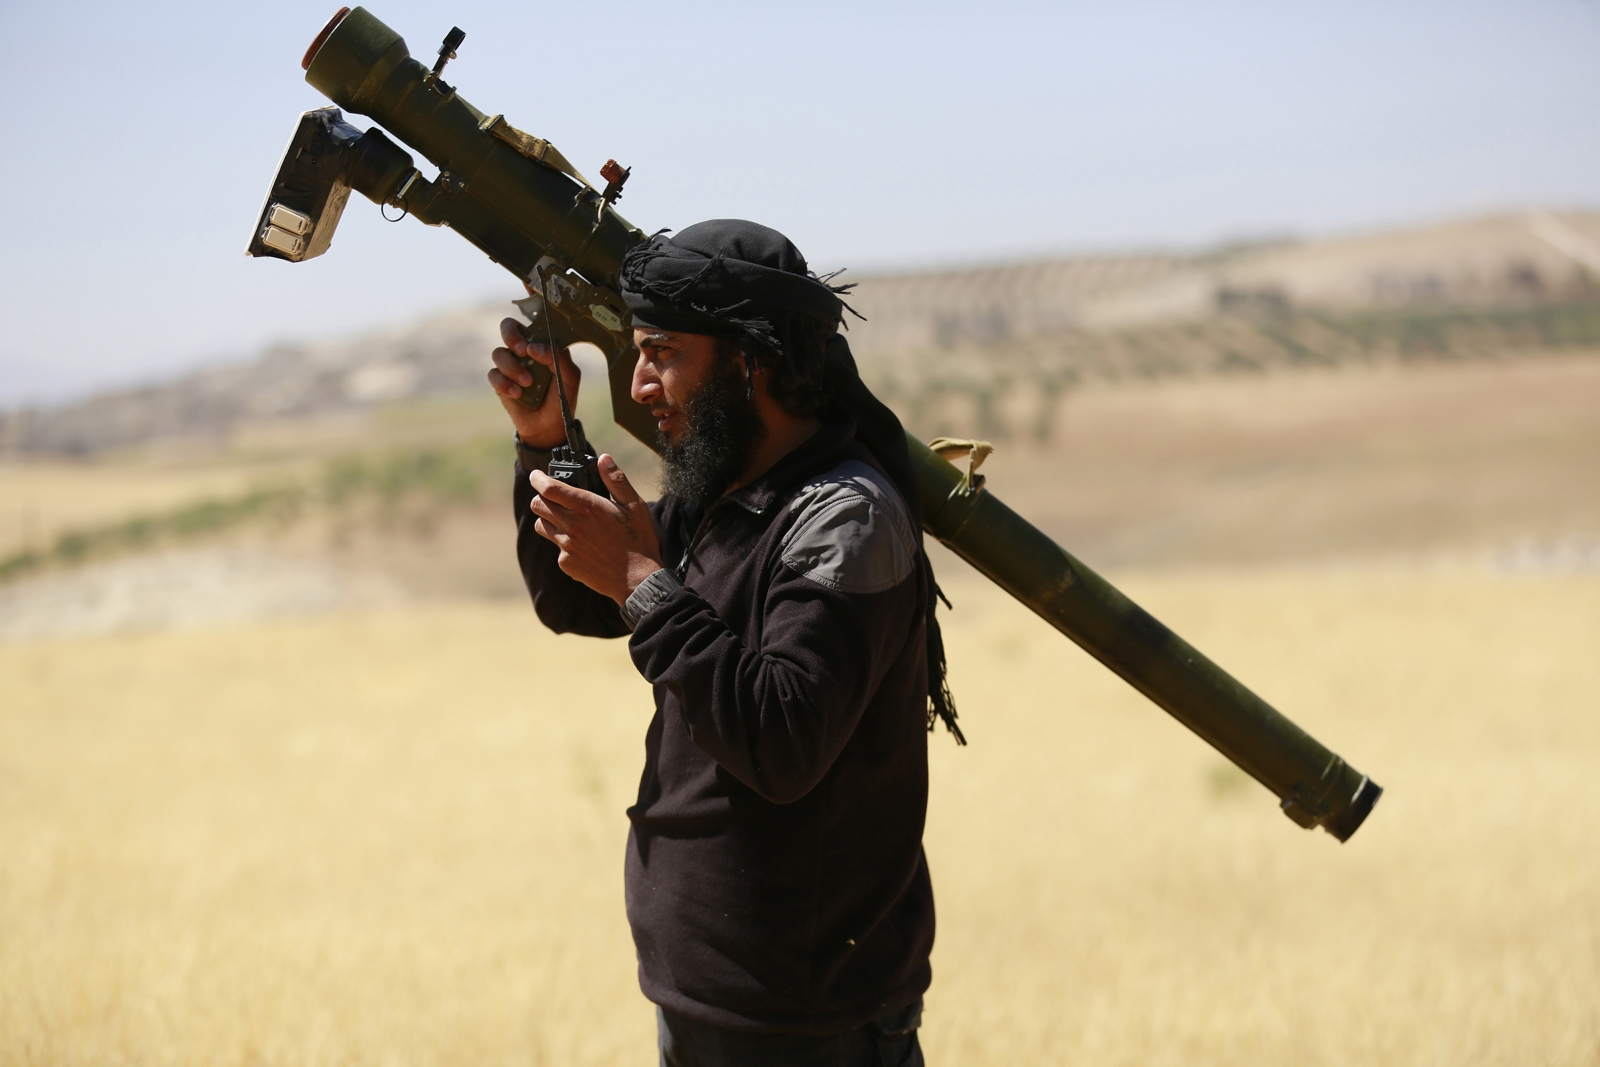 Syria airstrike kills top Nusra commander